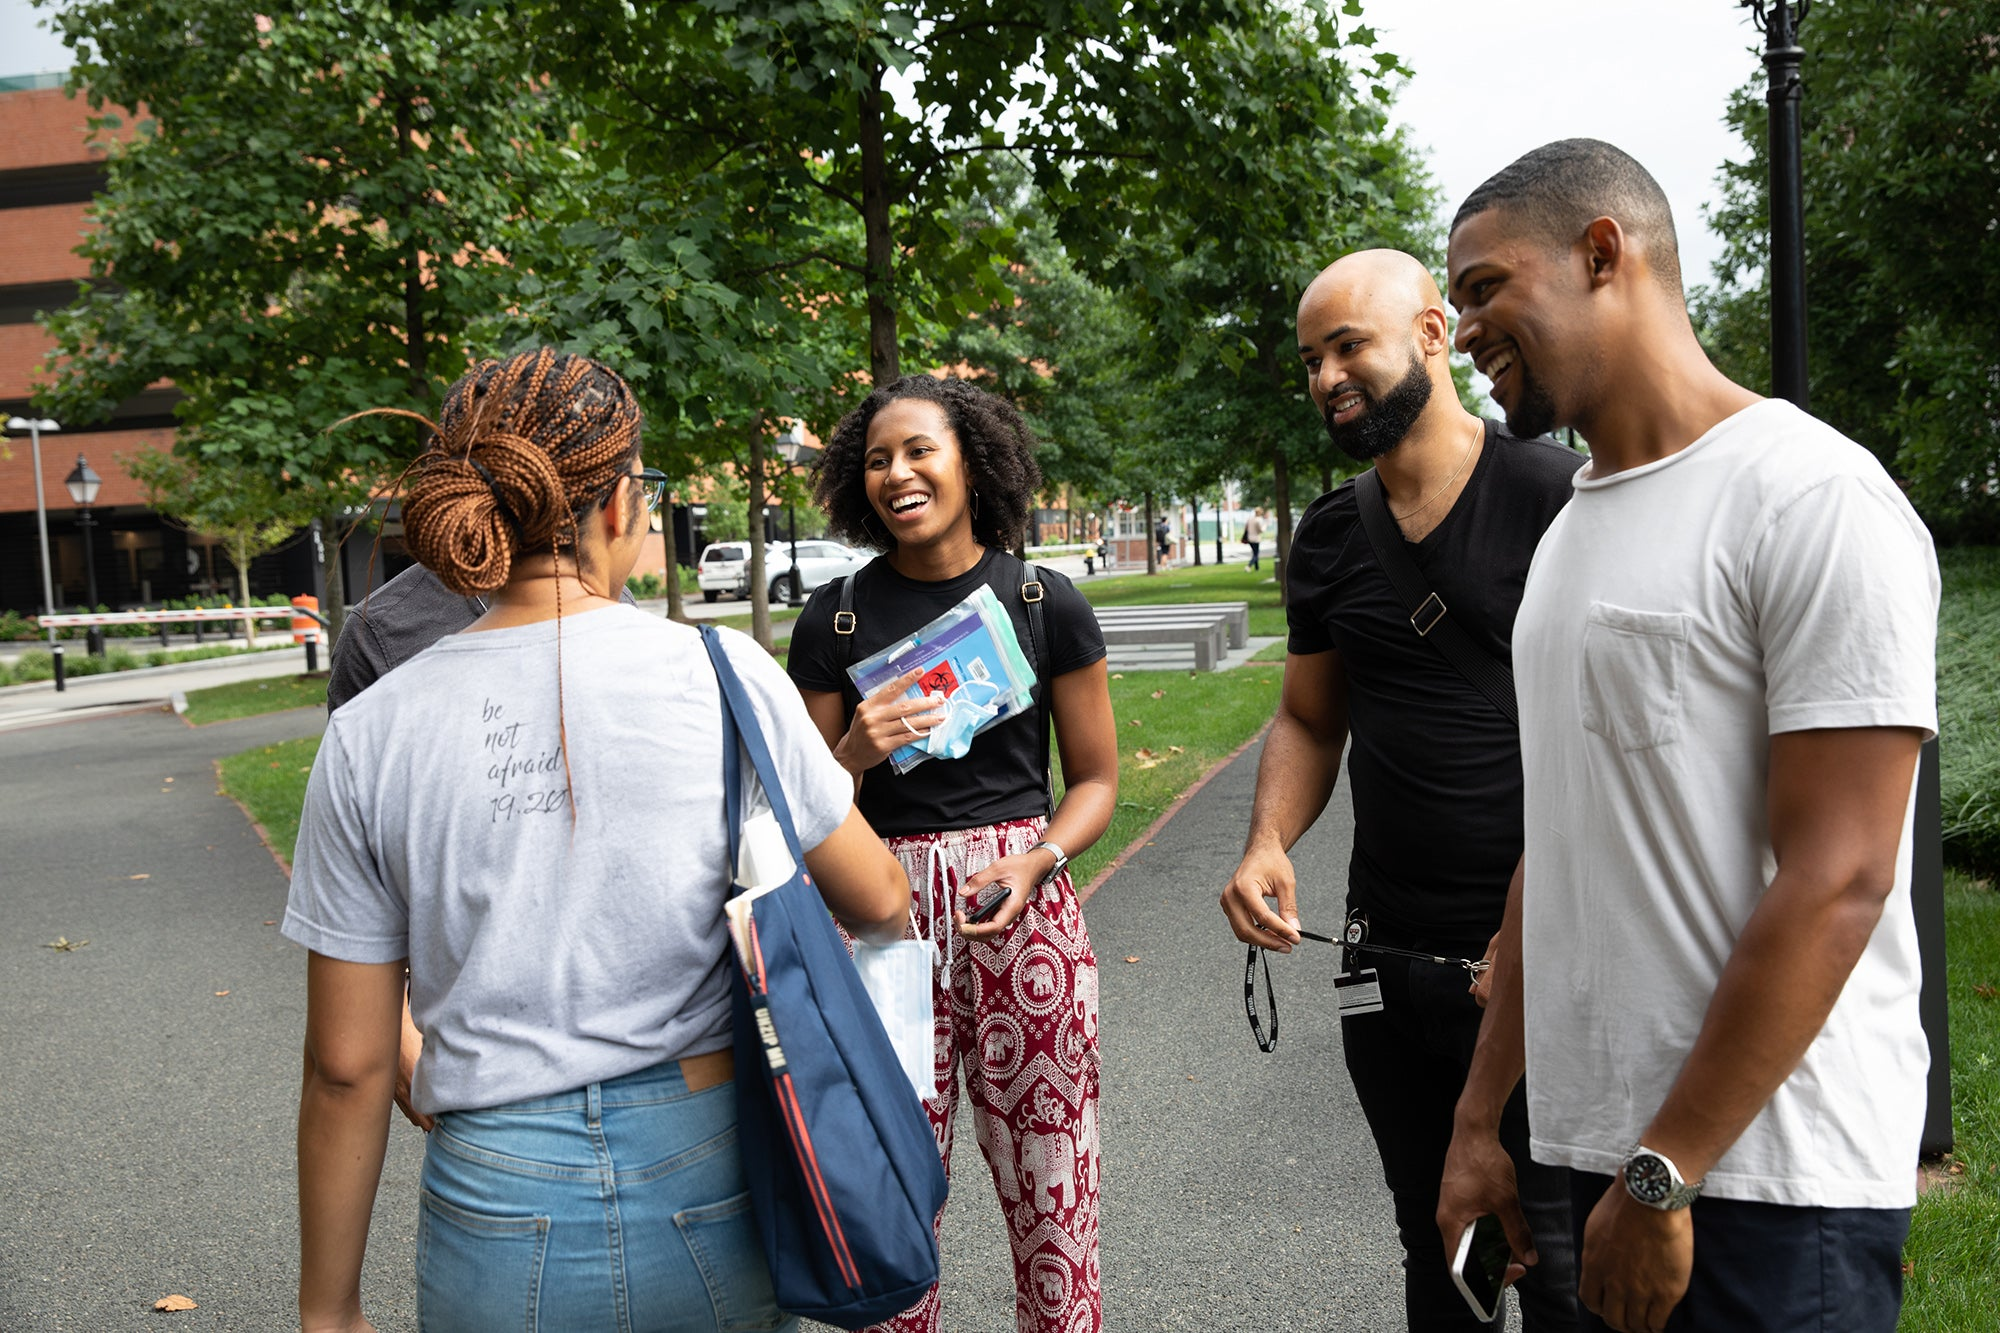 A group of students talk on campus